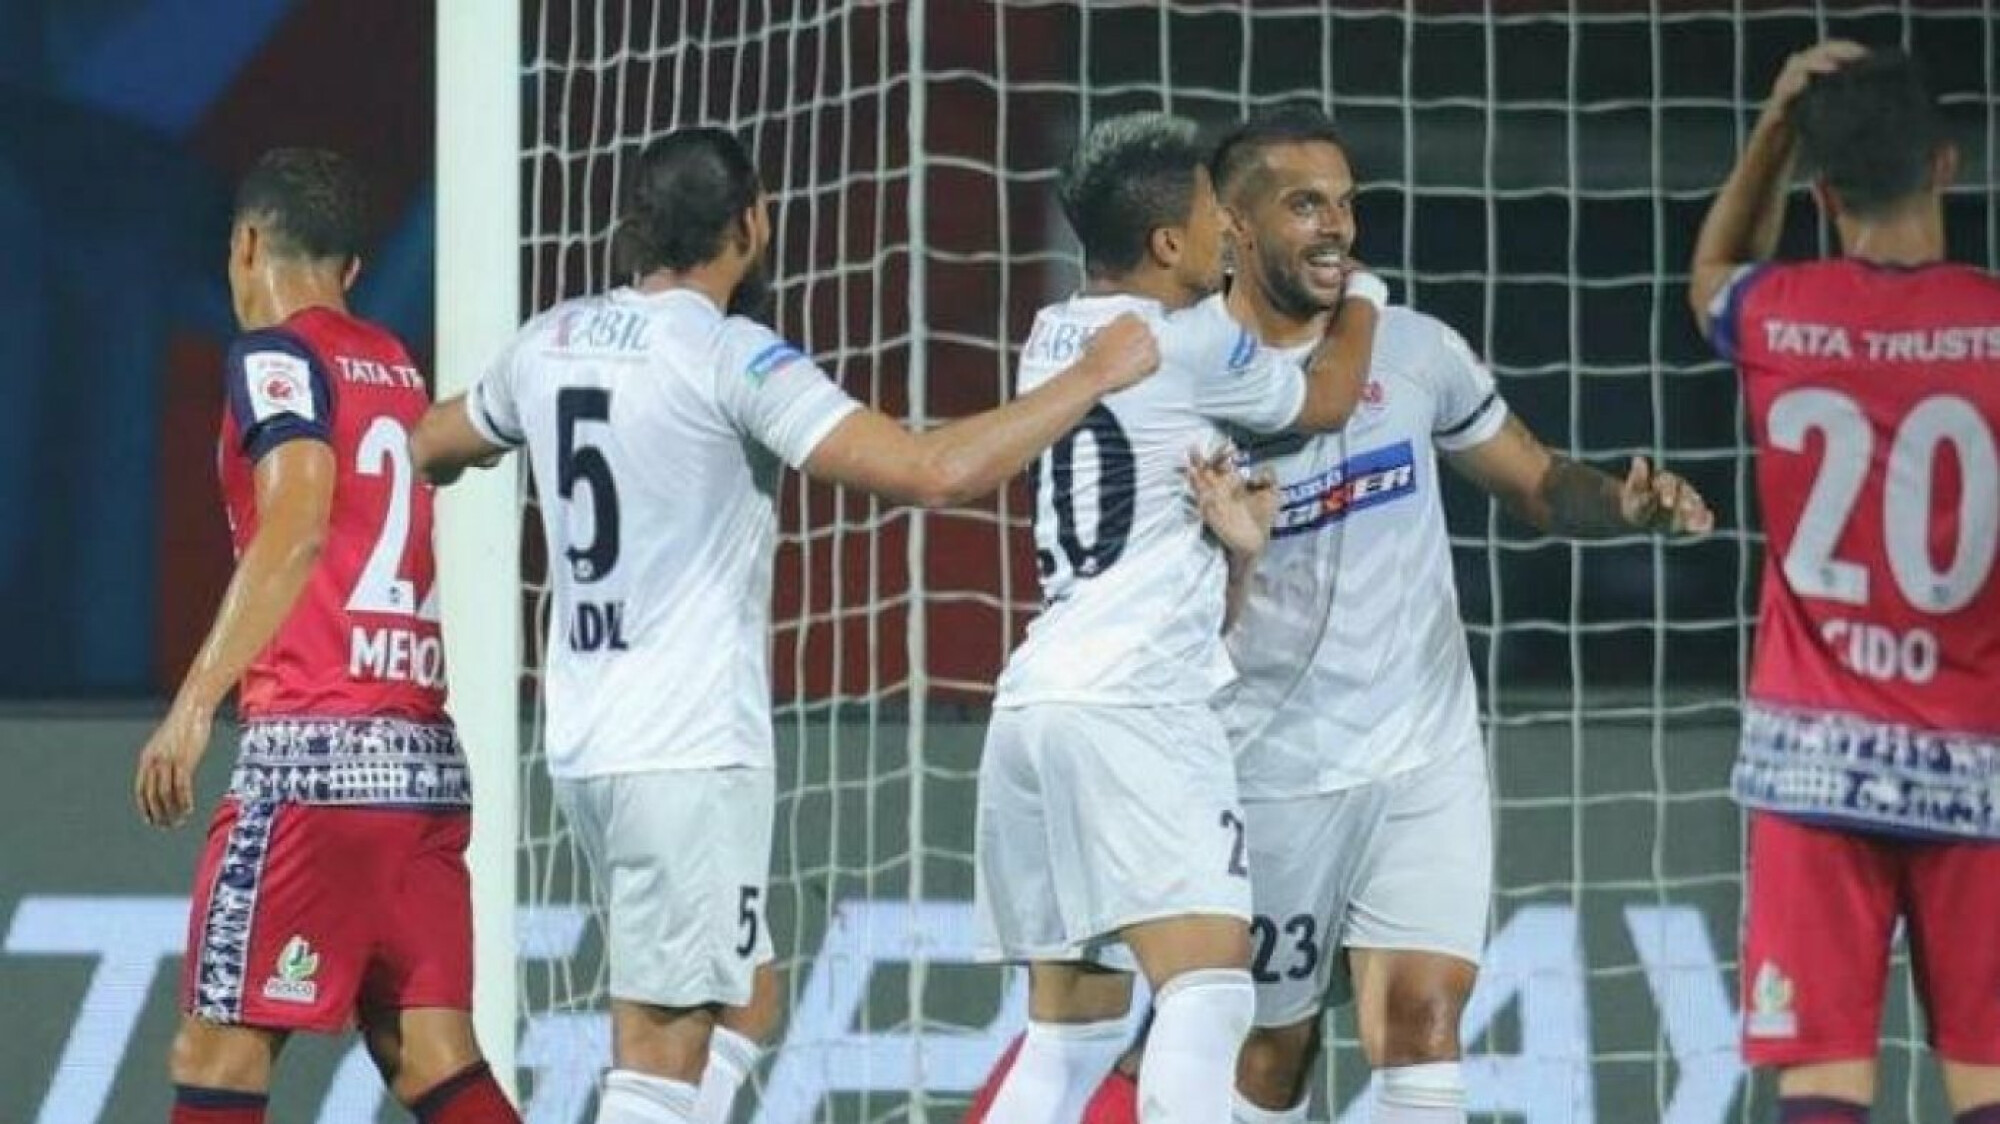 ISL 2018-19: FC Pune City annihilation leaves Jamshedpur with strenuous task in playoff race.